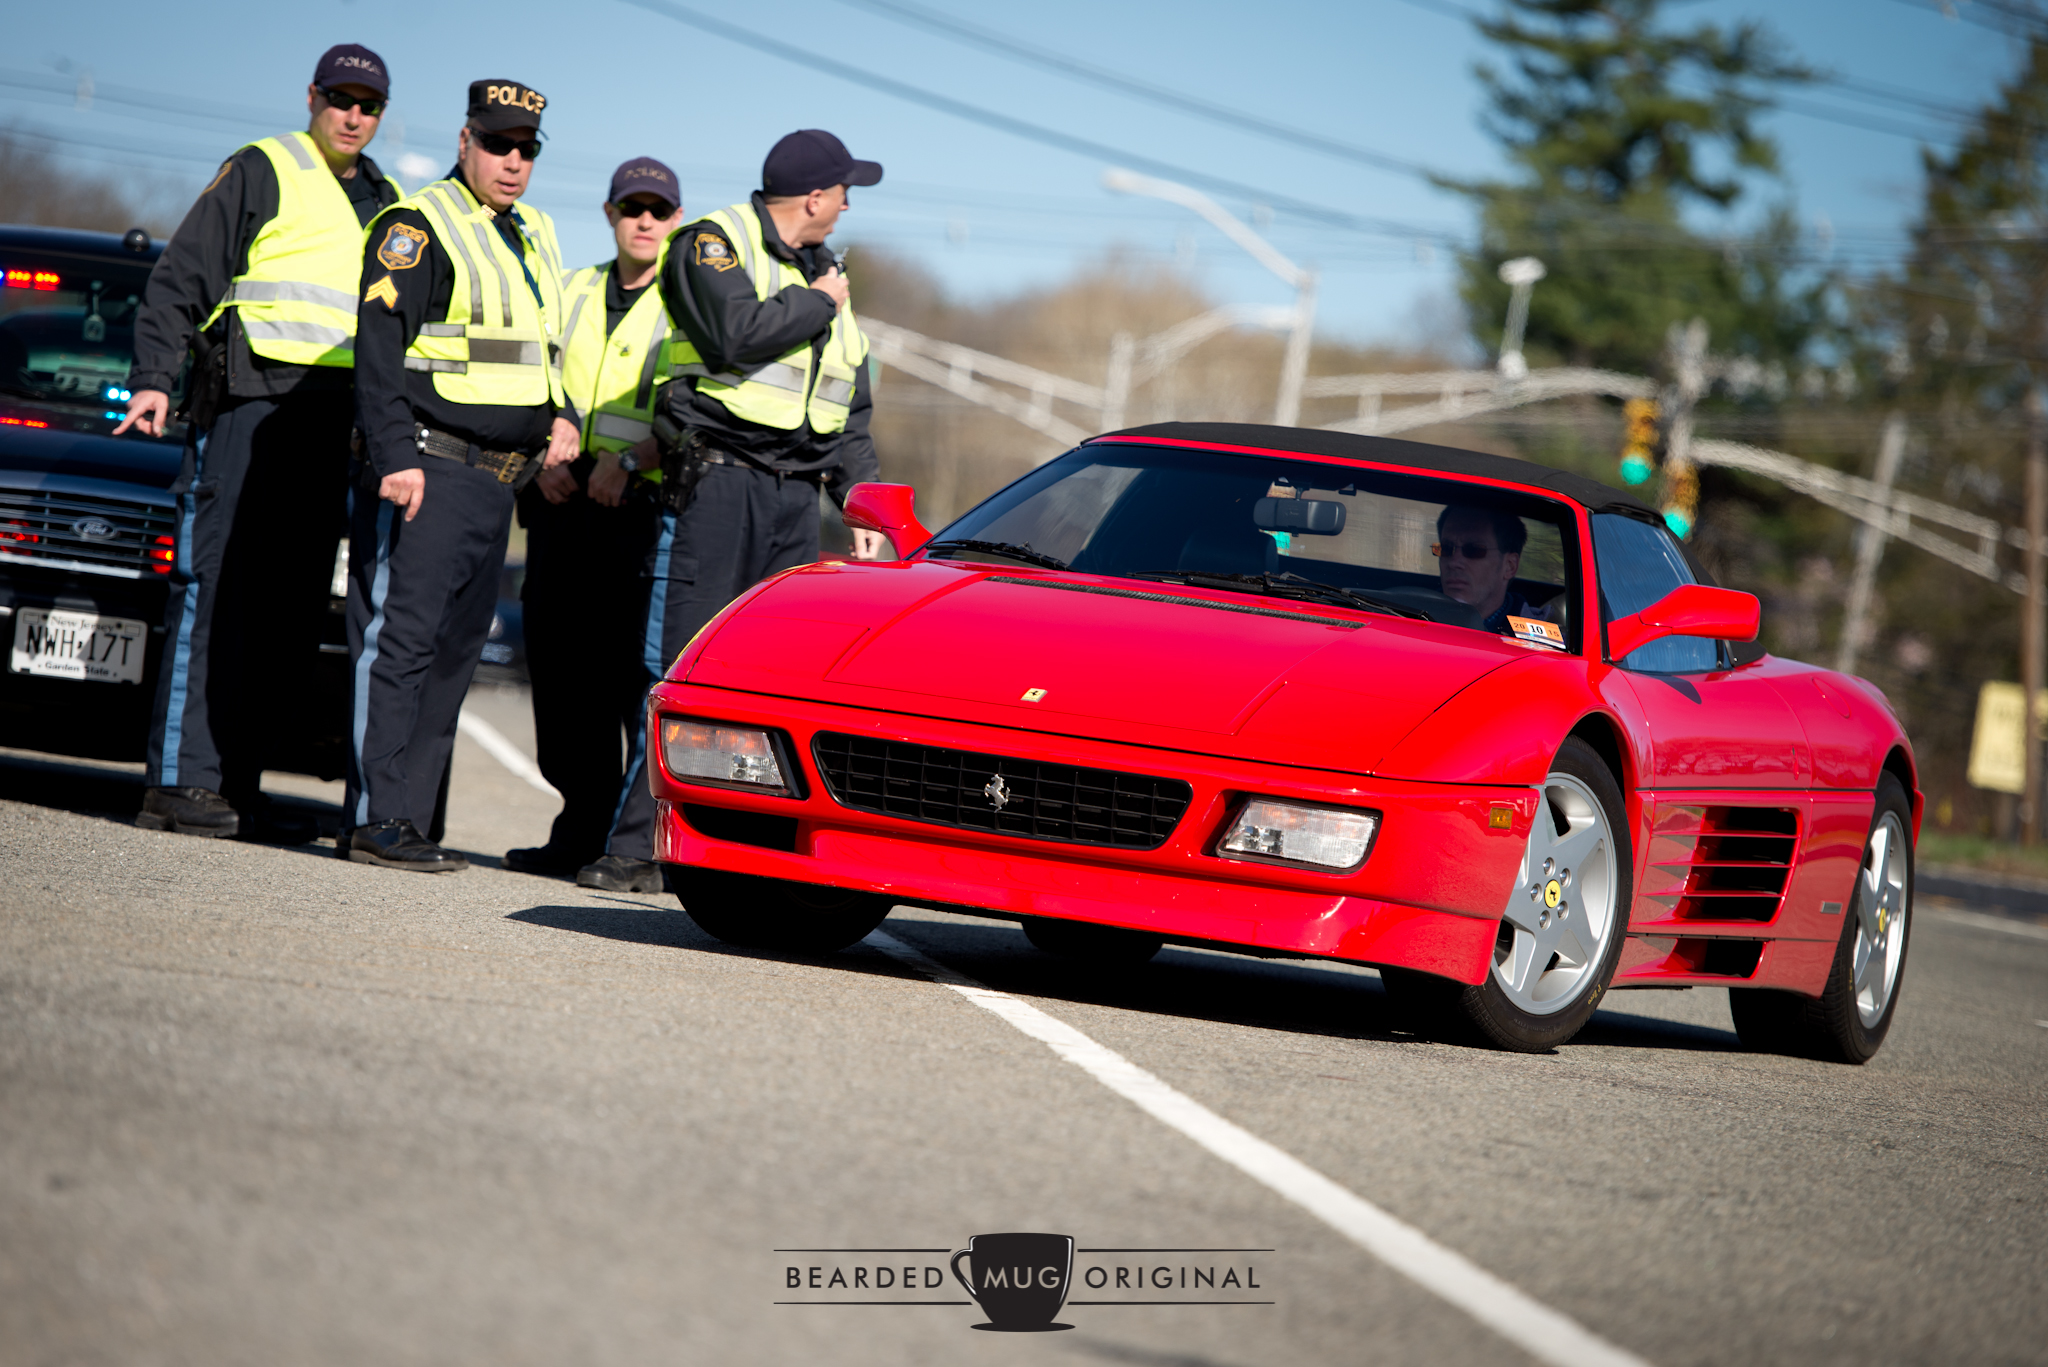 Ferrari 348 enjoys extra protection while making the right-hander ino the lot.